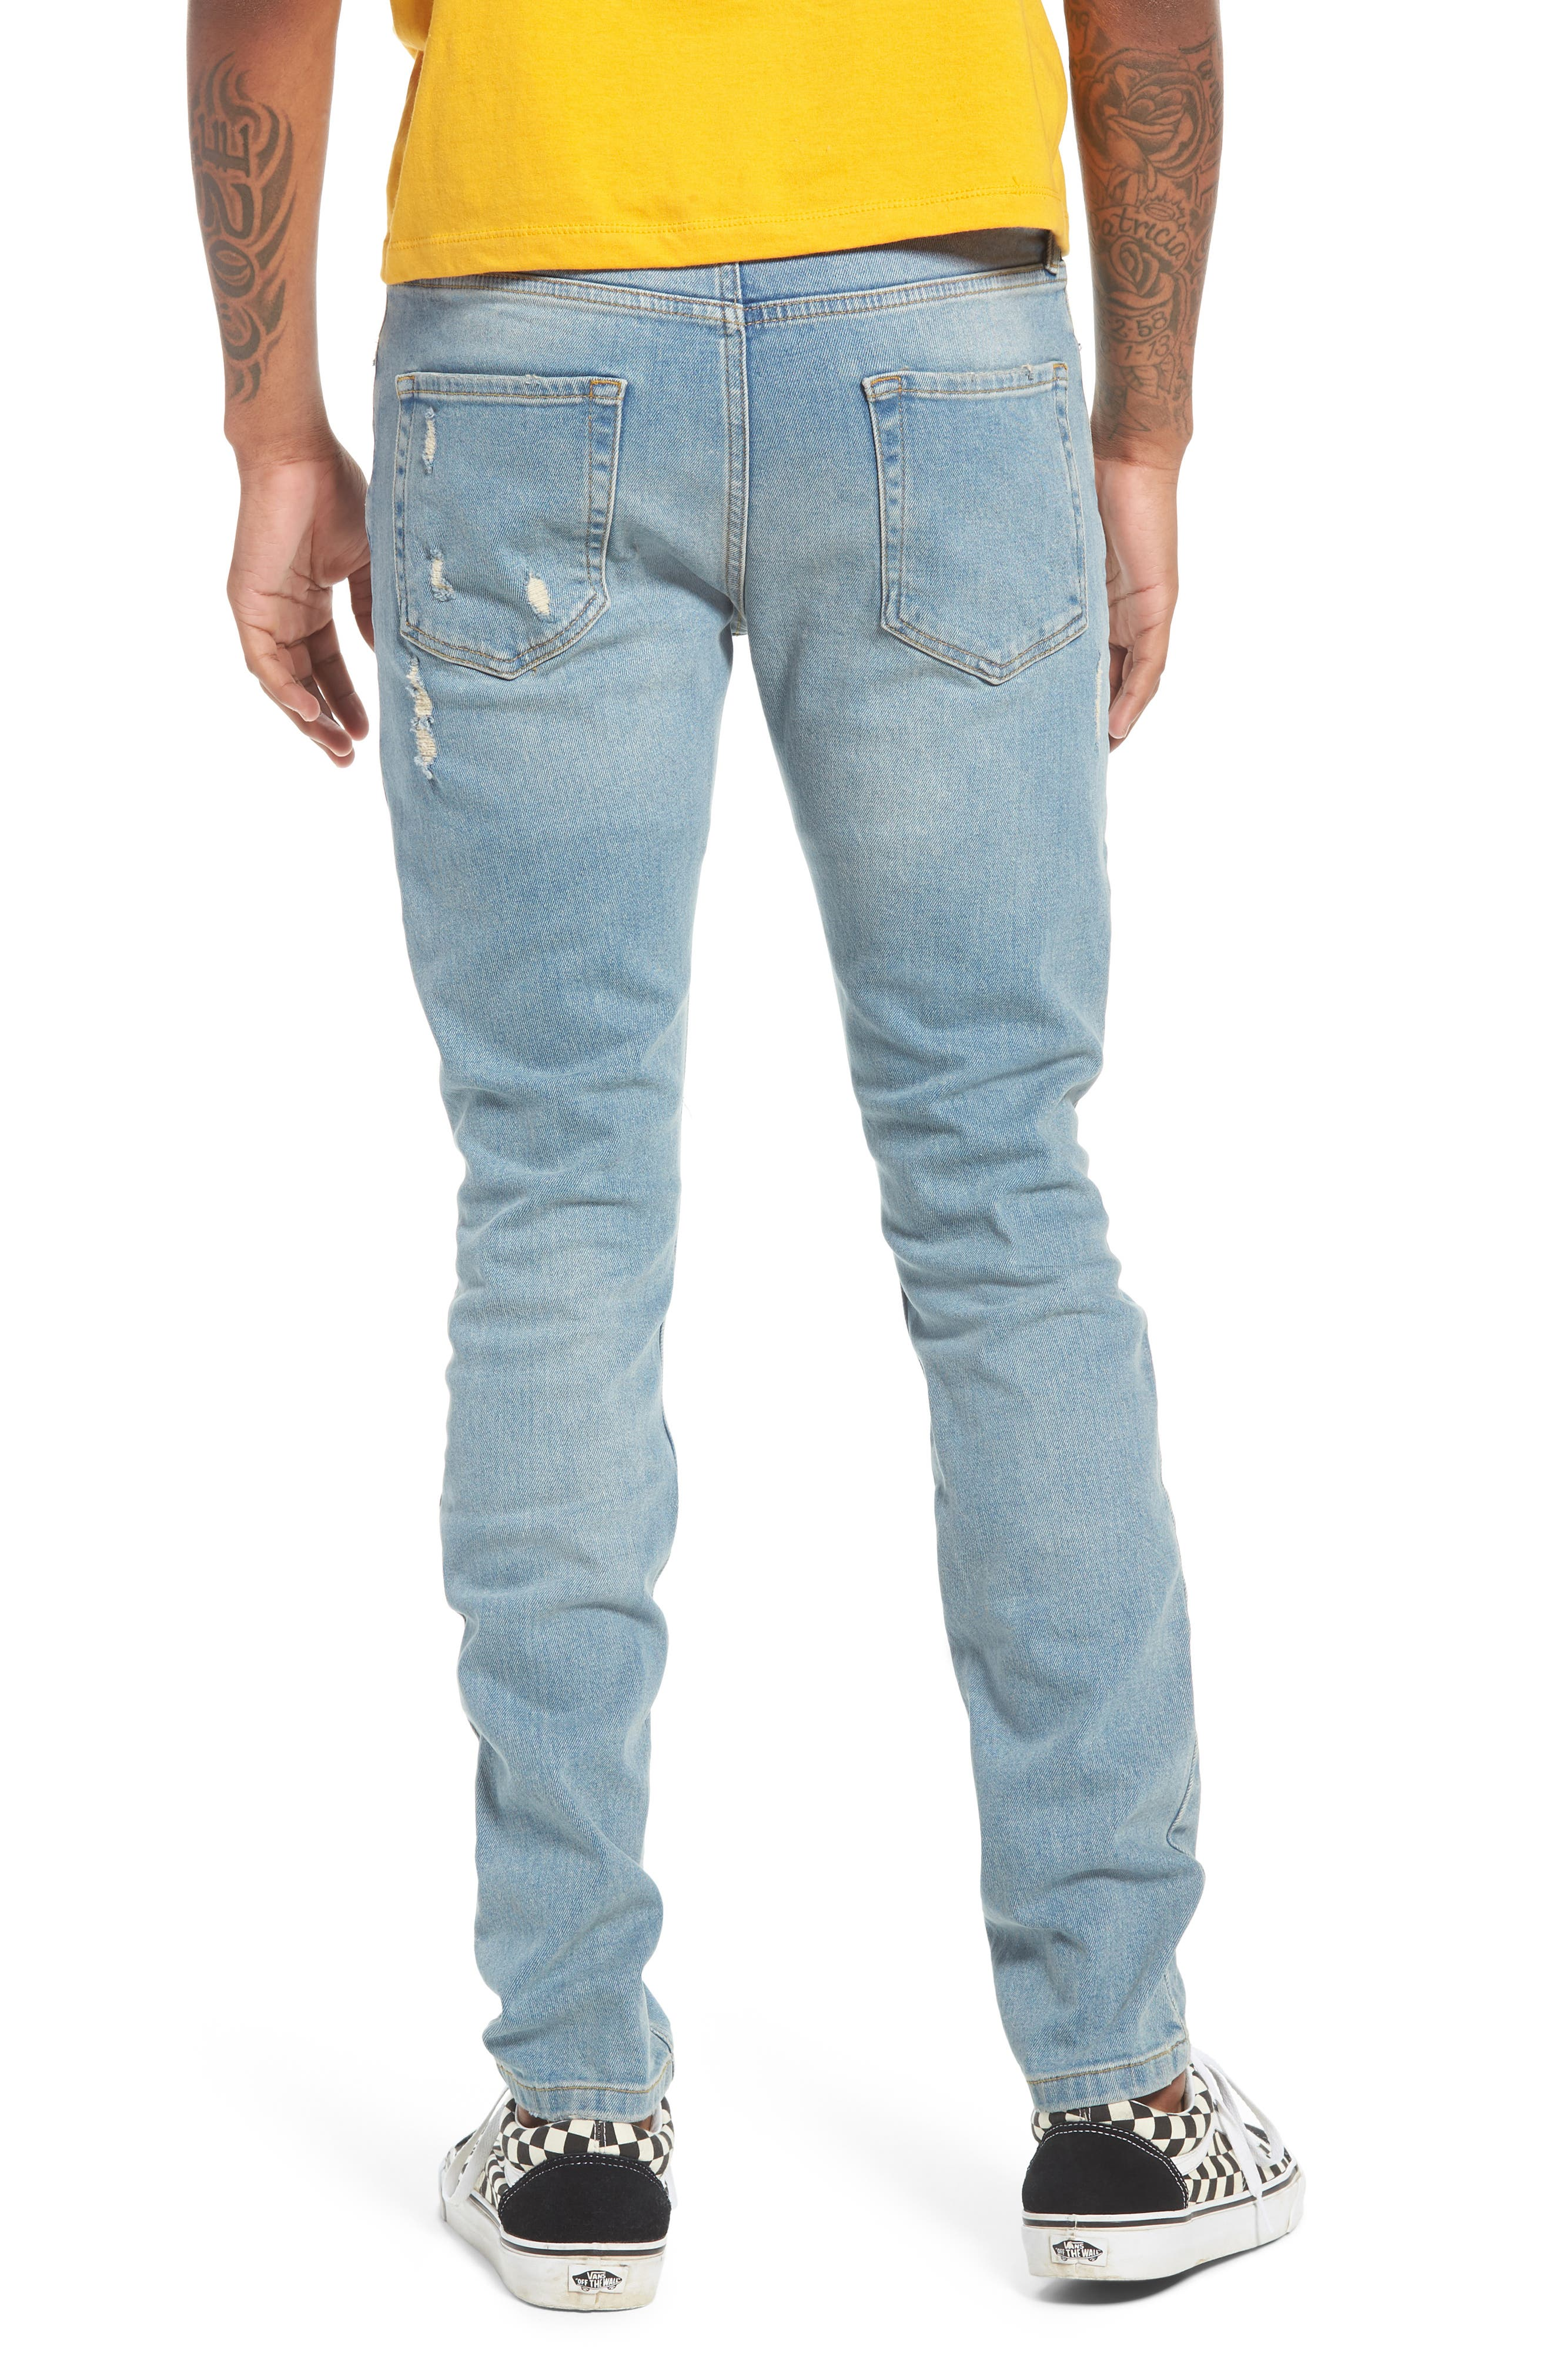 TOPMAN, Ripped Stretch Skinny Jeans, Alternate thumbnail 2, color, LIGHT WASH DENIM